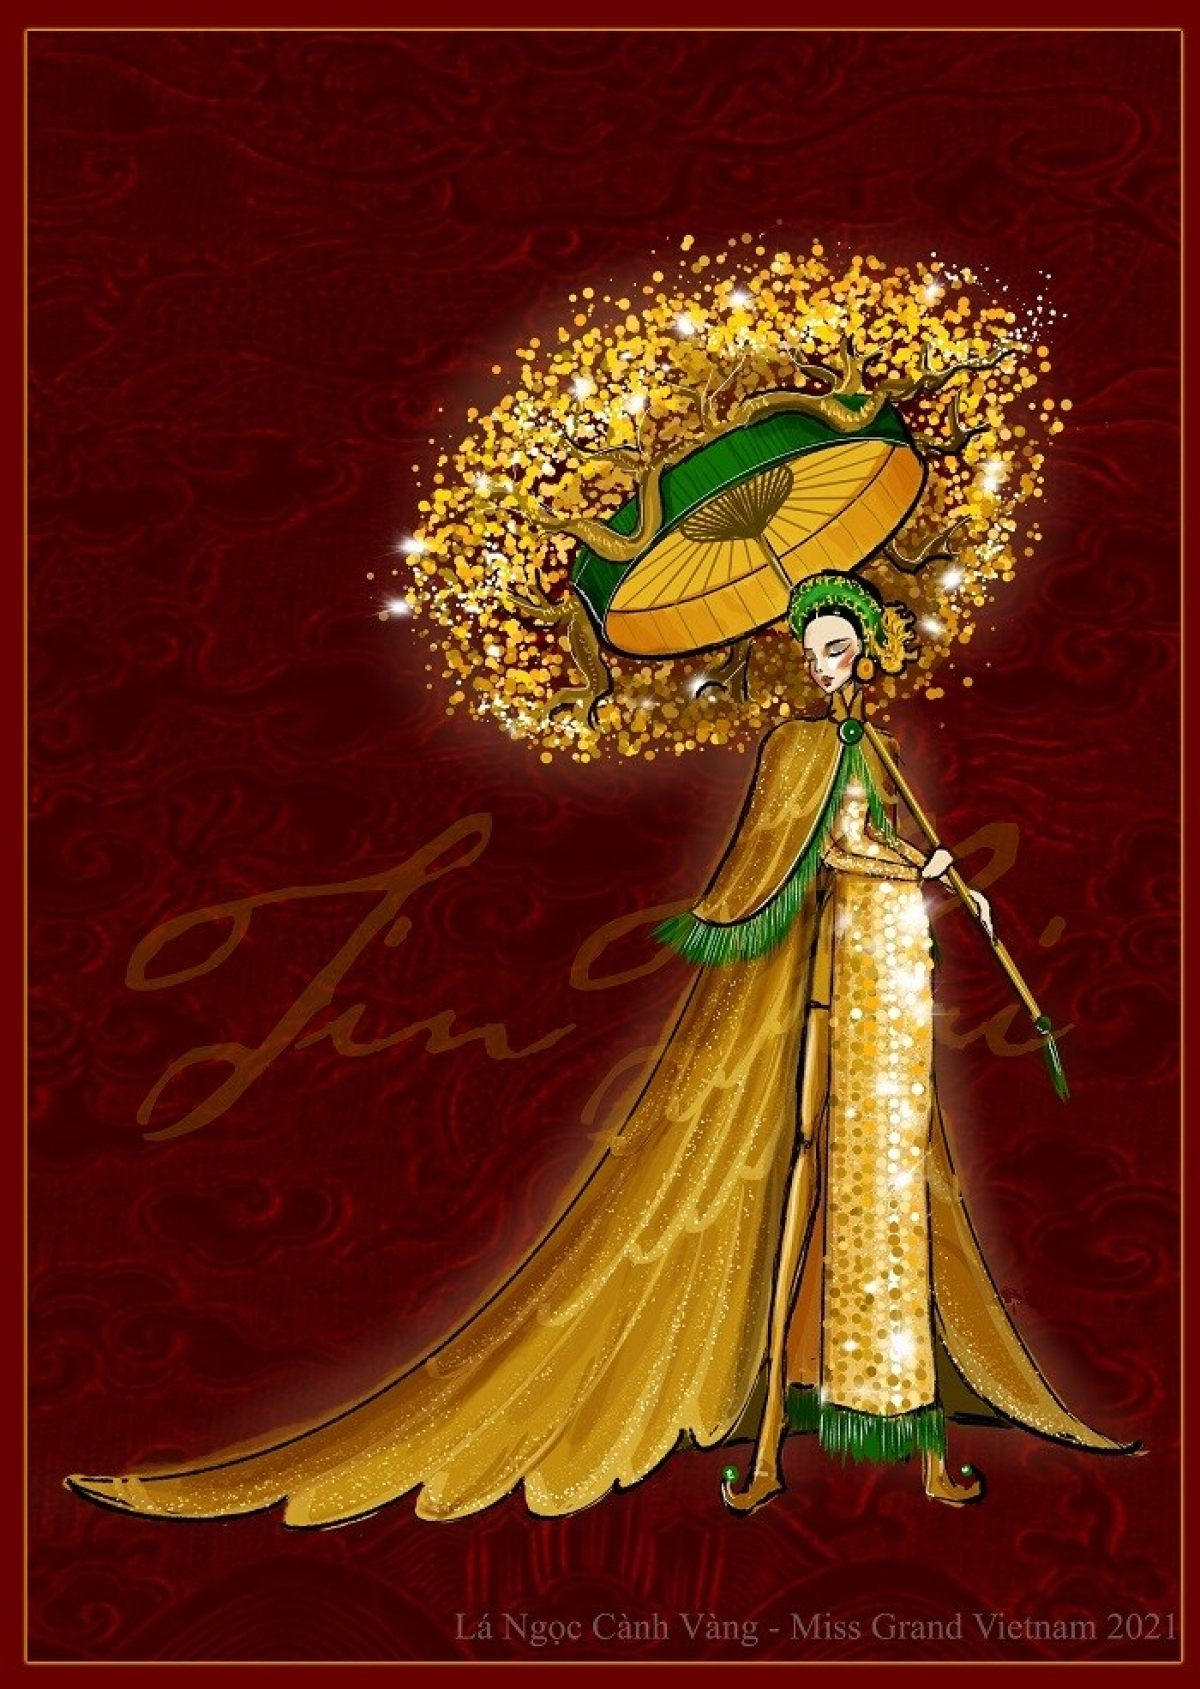 The royal culture of the ancient capital of Hue is the main inspiration for the outline of the second national costume.